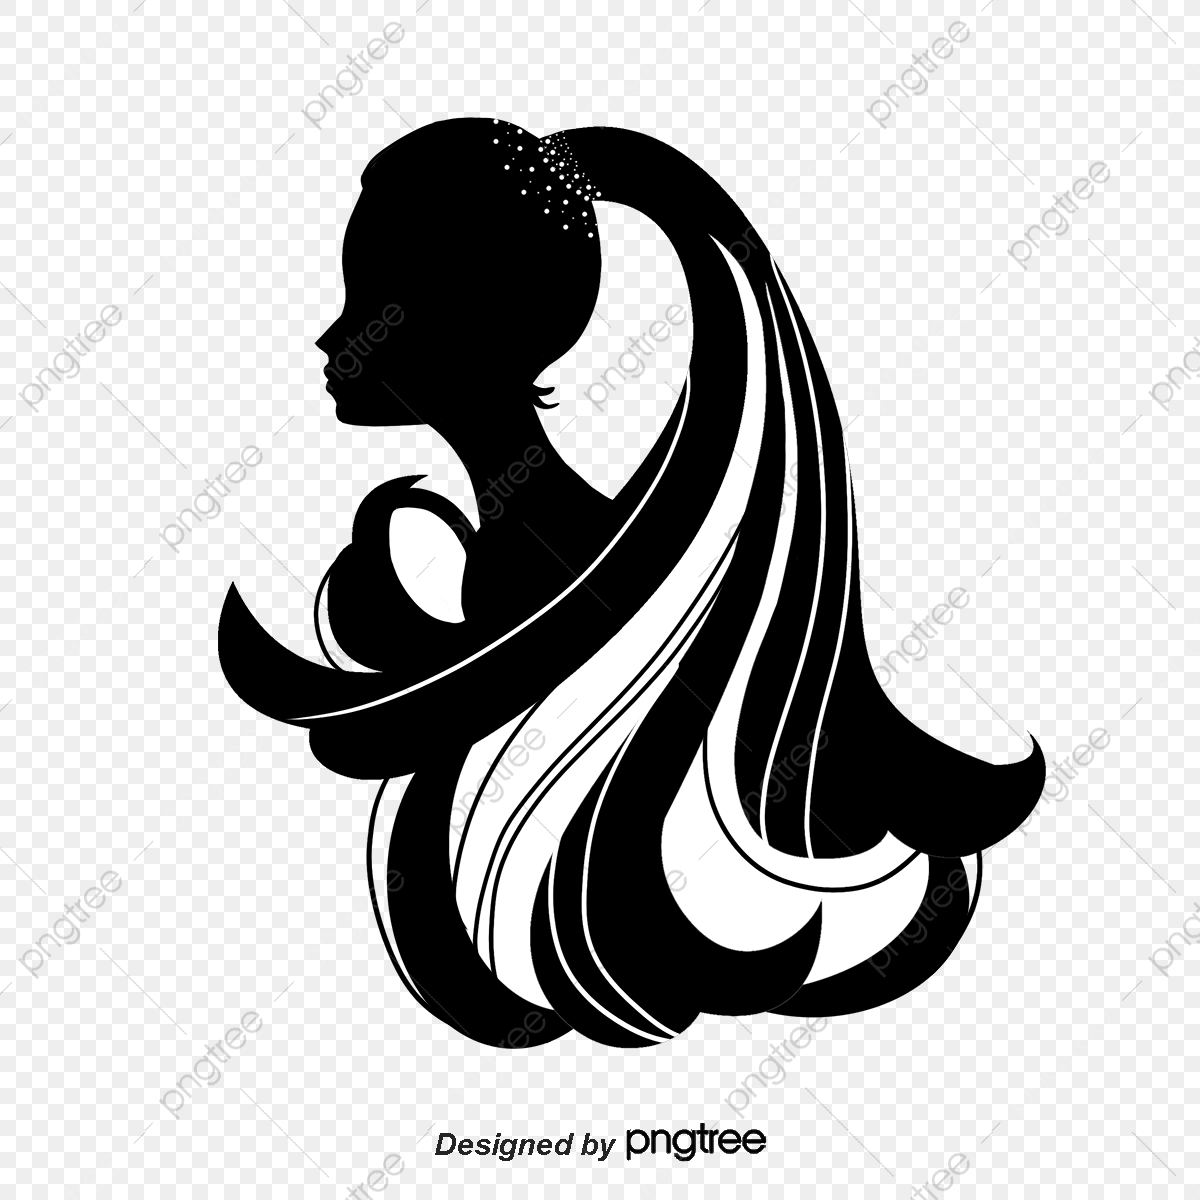 Black Female Silhouette Female Silhouette Black Silhouette Beautiful Silhouette Png Transparent Clipart Image And Psd File For Free Download,Mixed Bag Designs Promo Code